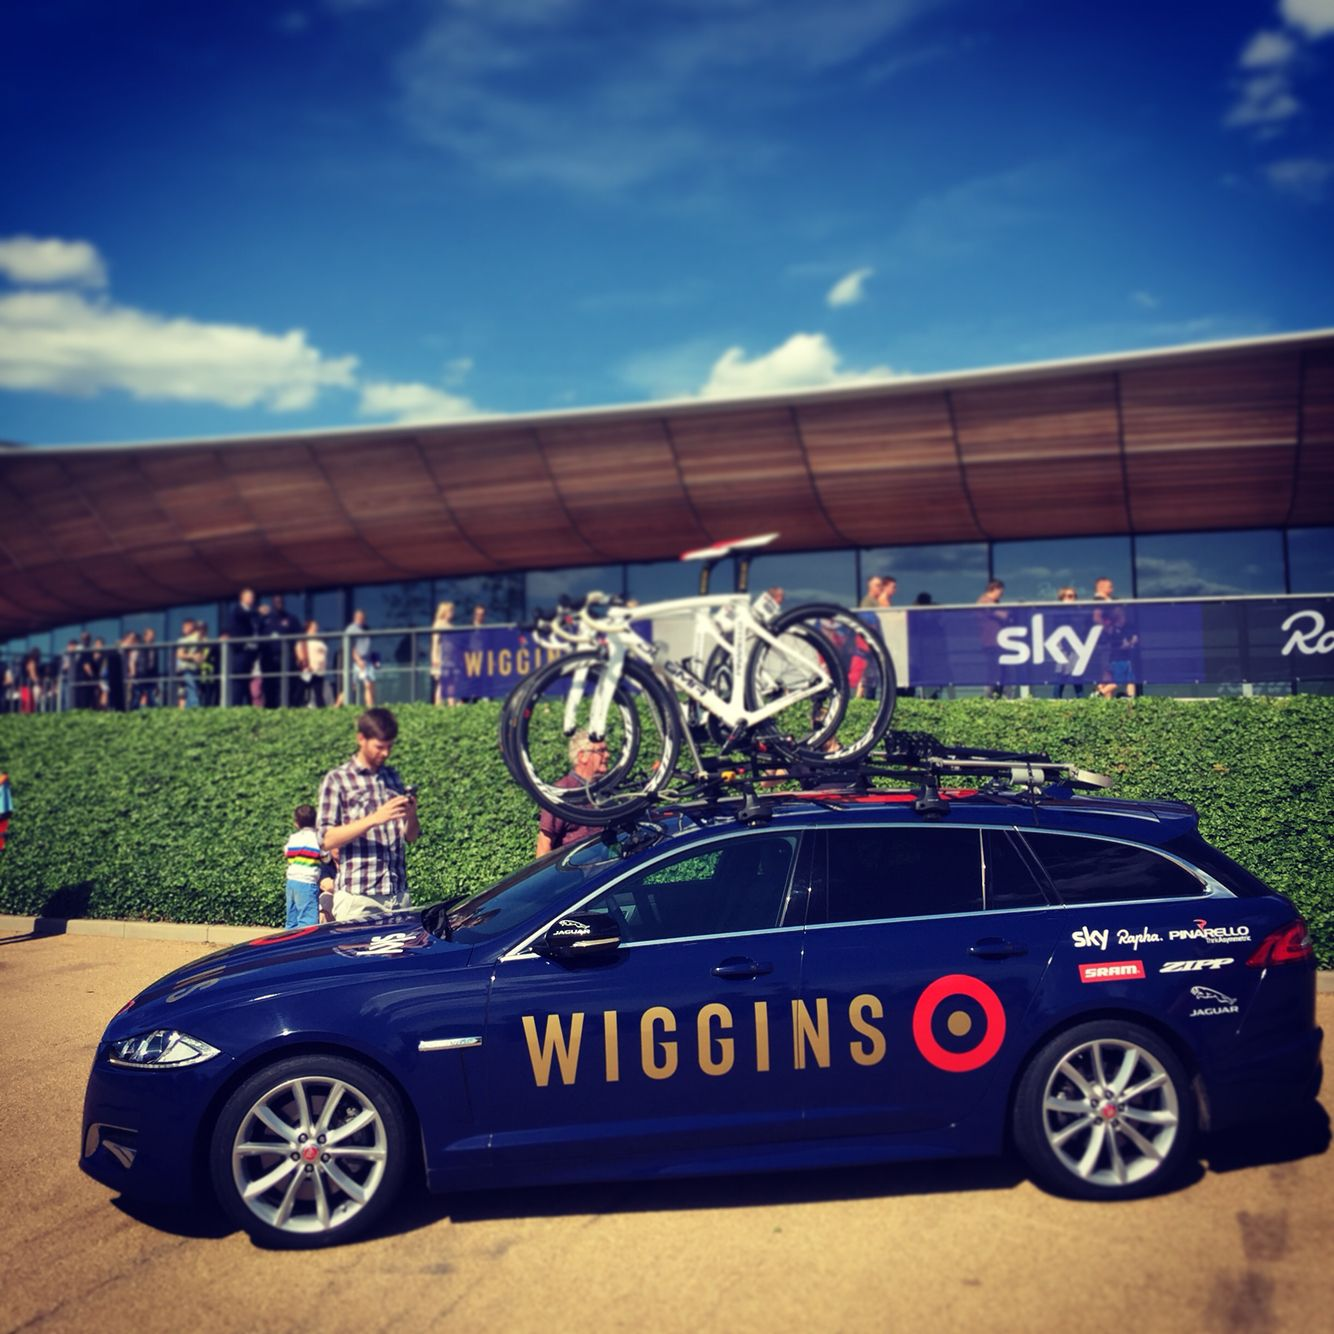 Bradley Wiggins' personal brand. Nice. Look closely at the 'G'